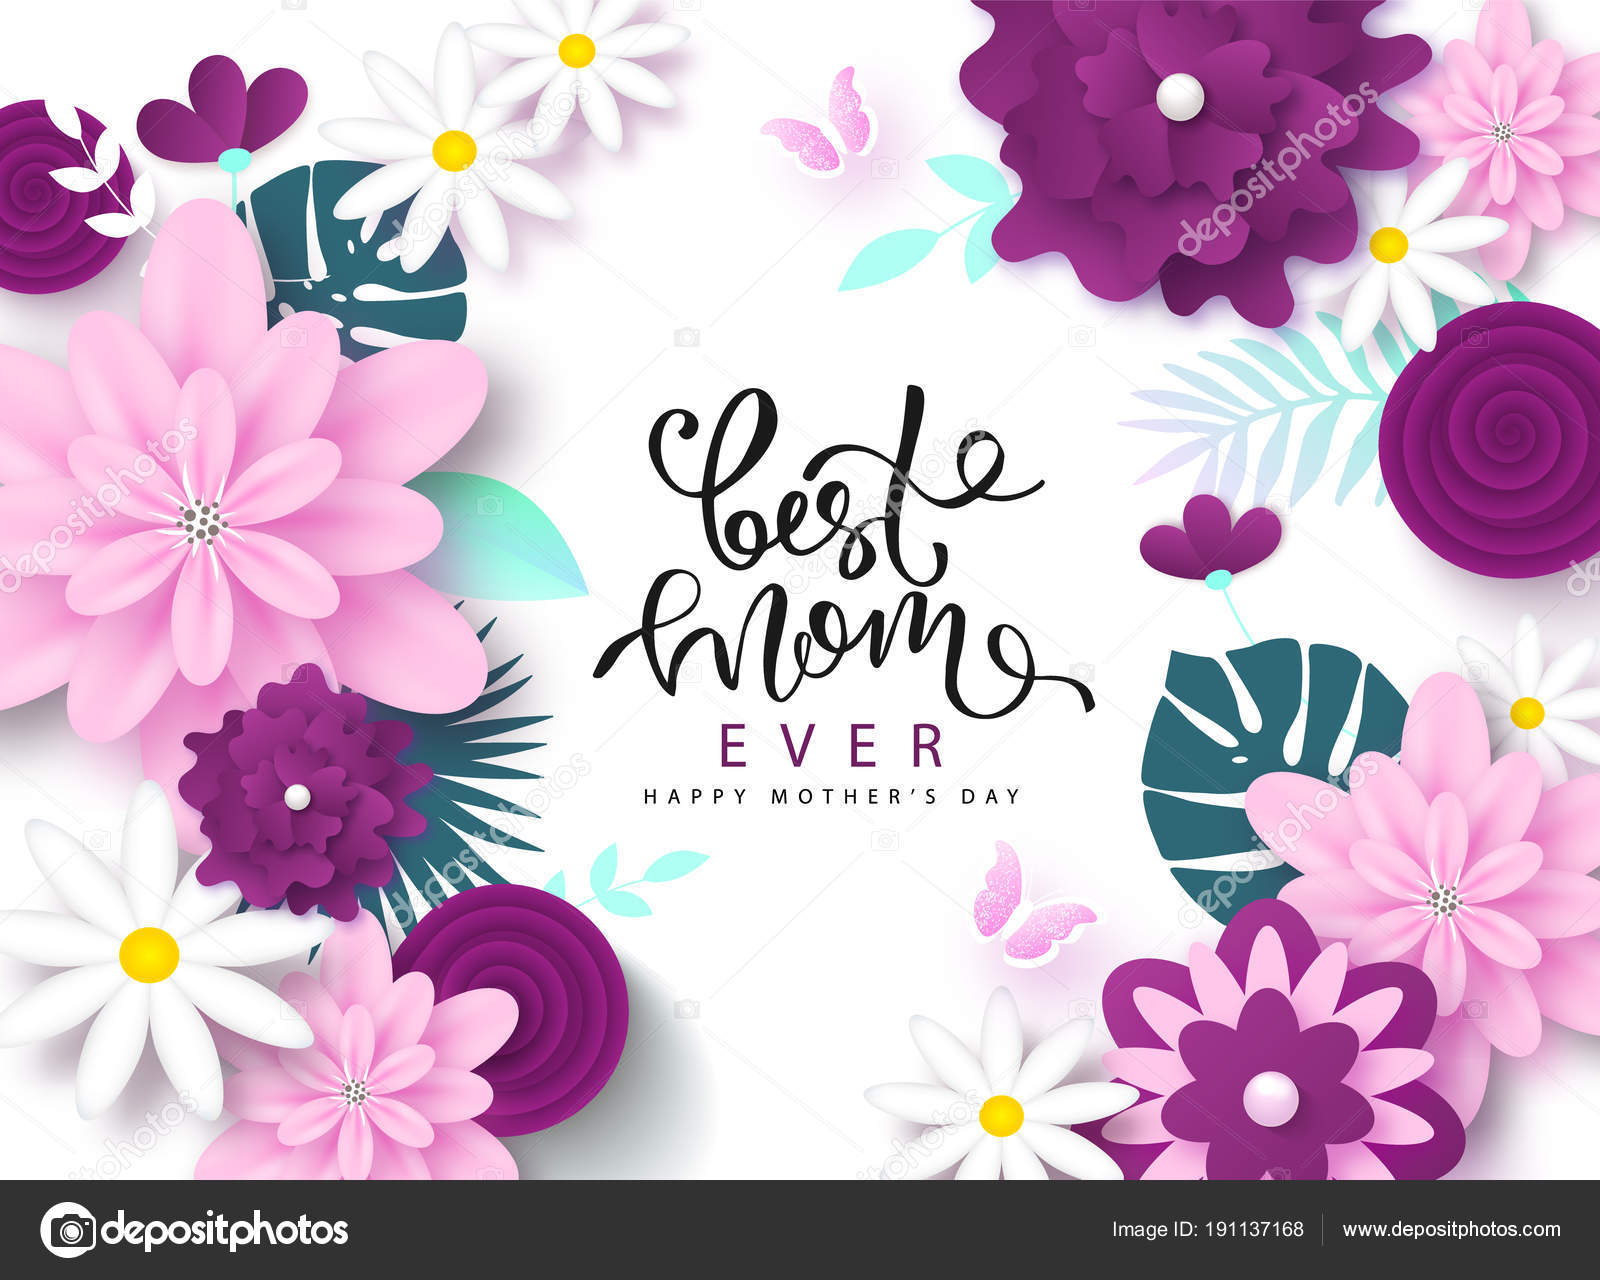 Happy Mothers Day Greeting Card Design With Beautiful Blossom